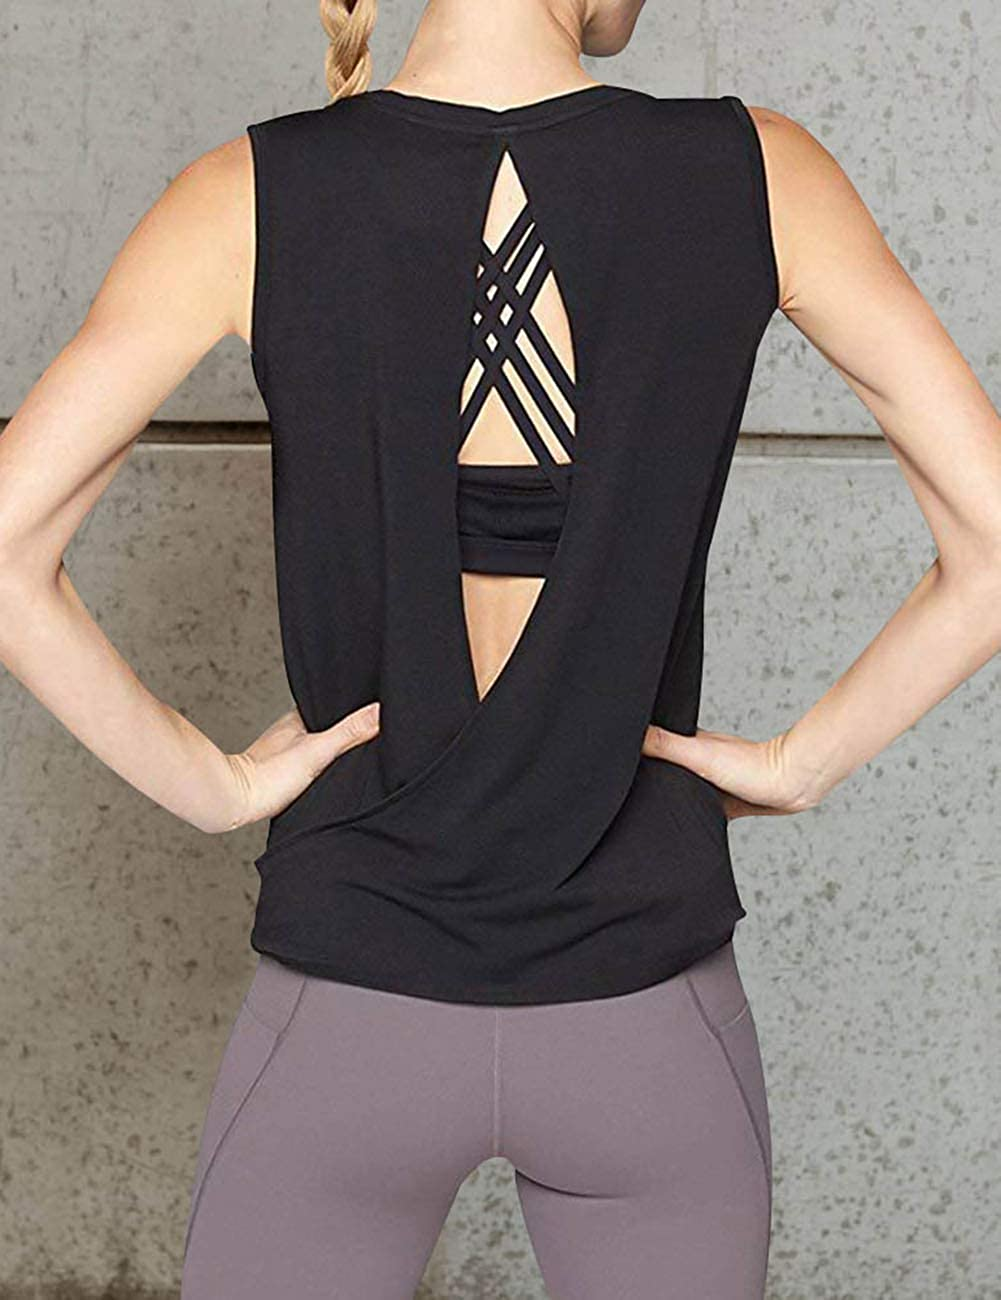 c1a84a77a96893 Amazon.com  YJQ Women s Sexy Open Back Yoga Shirt Workout Activewear Gym  Sports Tank Tops  Clothing